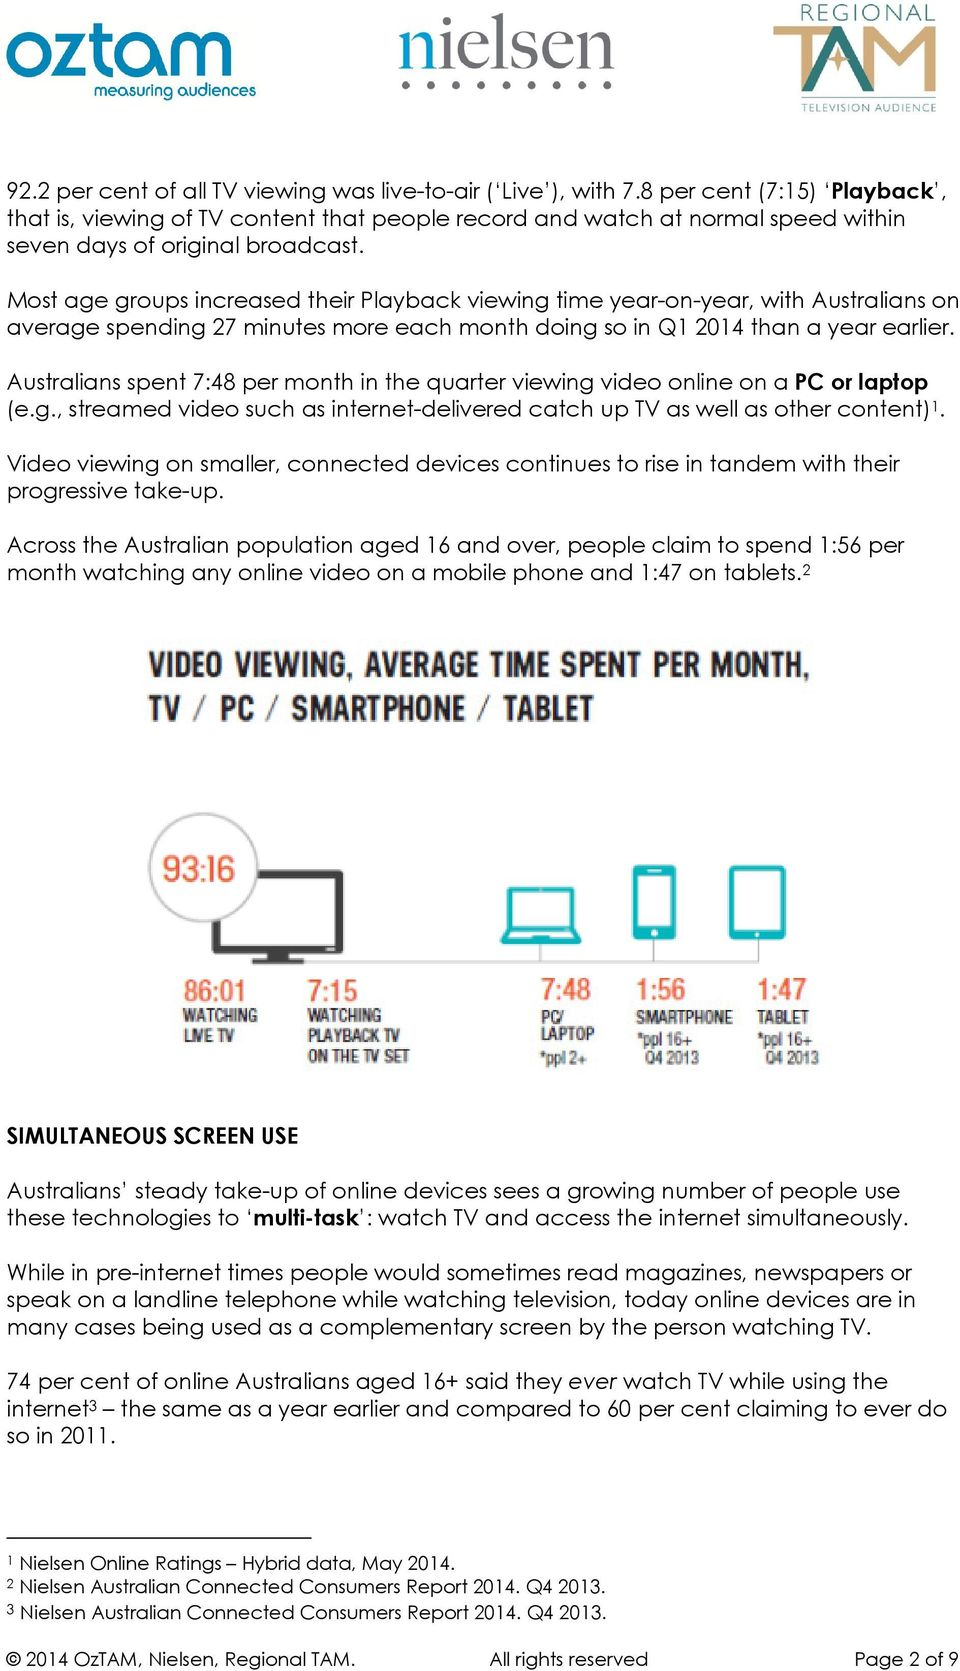 Most age groups increased their Playback viewing time year-on-year, with Australians on average spending 27 minutes more each month doing so in Q1 2014 than a year earlier.